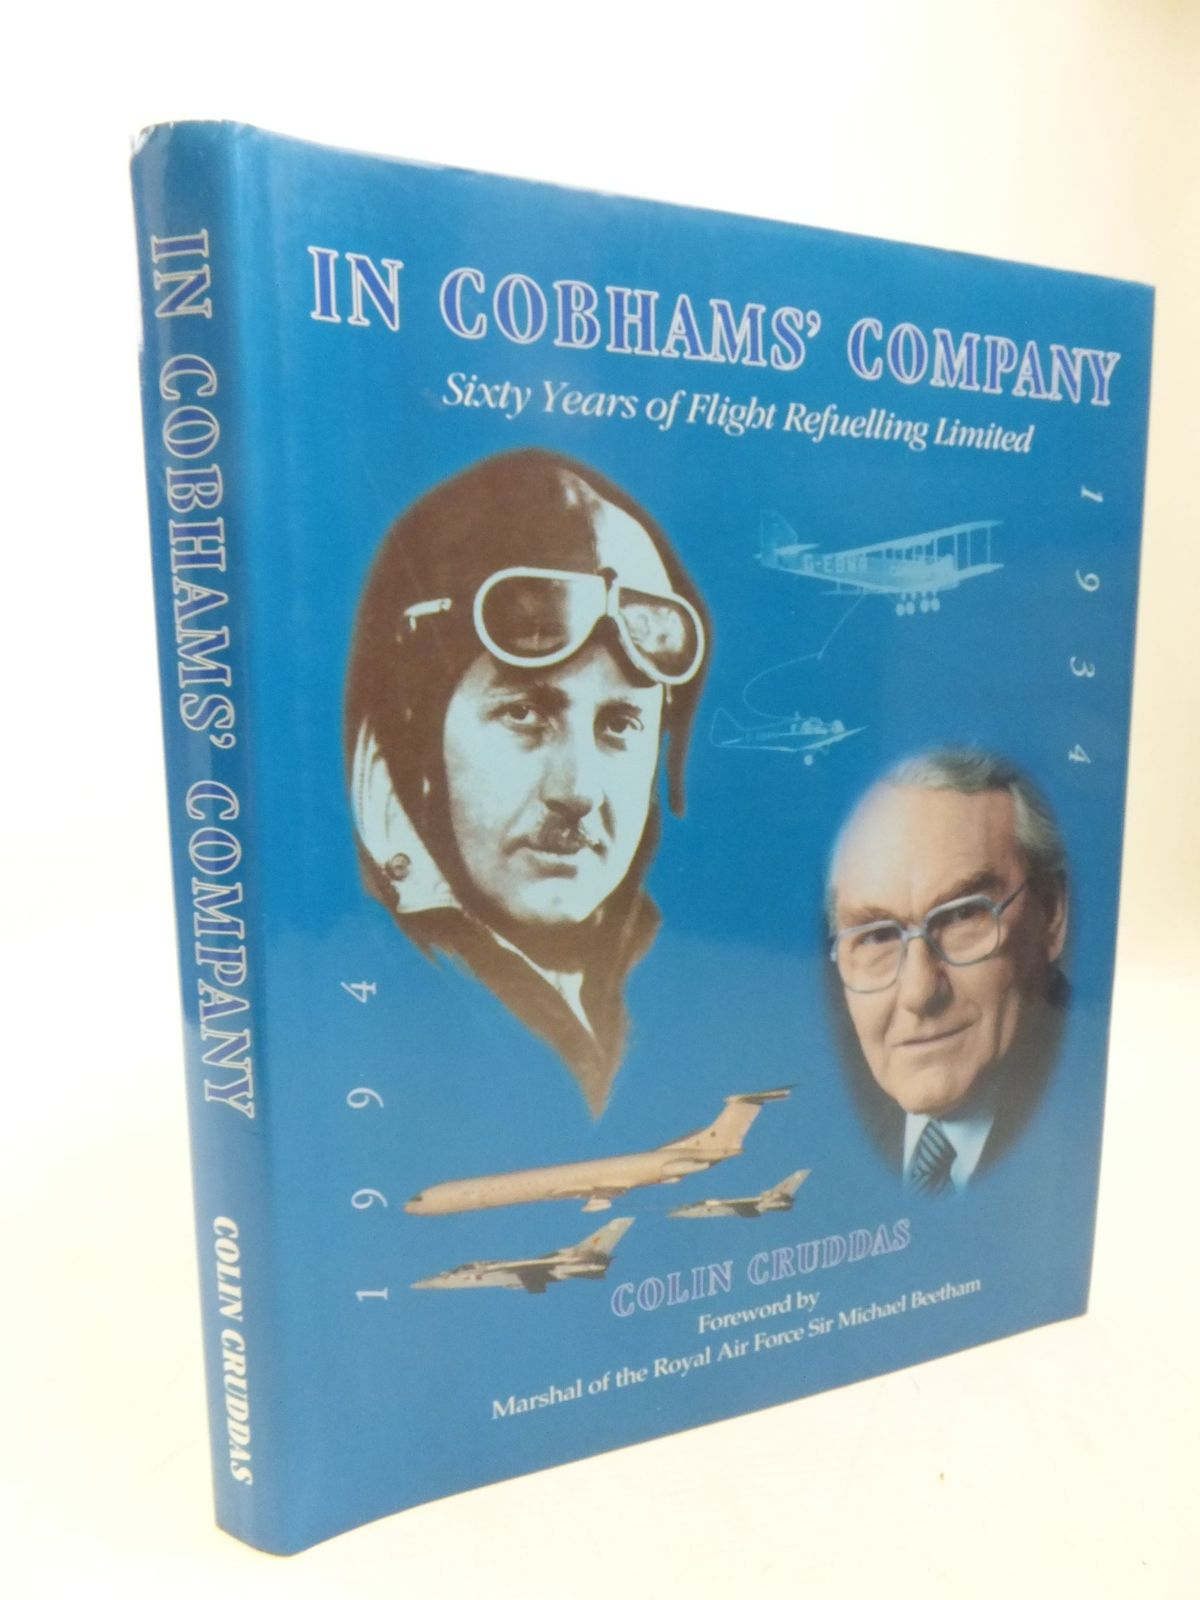 Photo of IN COBHAMS' COMPANY SIXTY YEARS OF FLIGHT REFUELLING LIMITED written by Cruddas, Colin published by Cobham Plc (STOCK CODE: 2118471)  for sale by Stella & Rose's Books